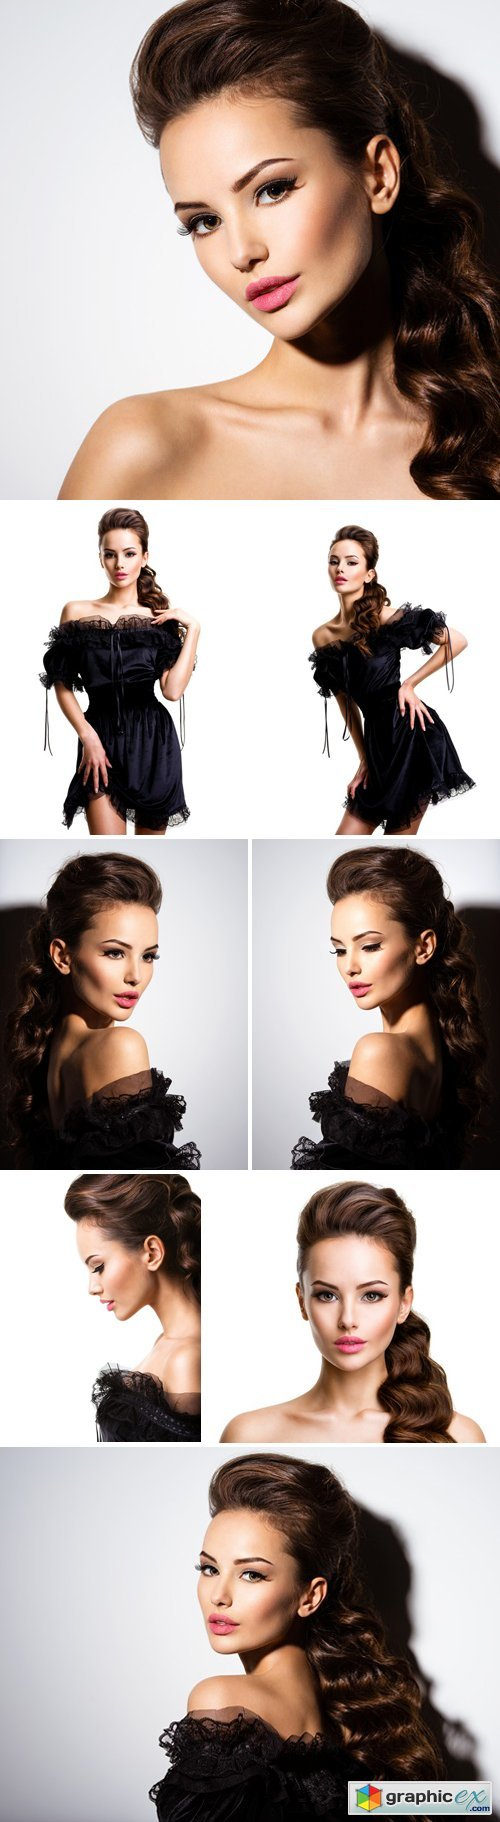 f9c906e4b Stock Photos - Beautiful Face Of An Young Sexy Girl In Black Dress ...